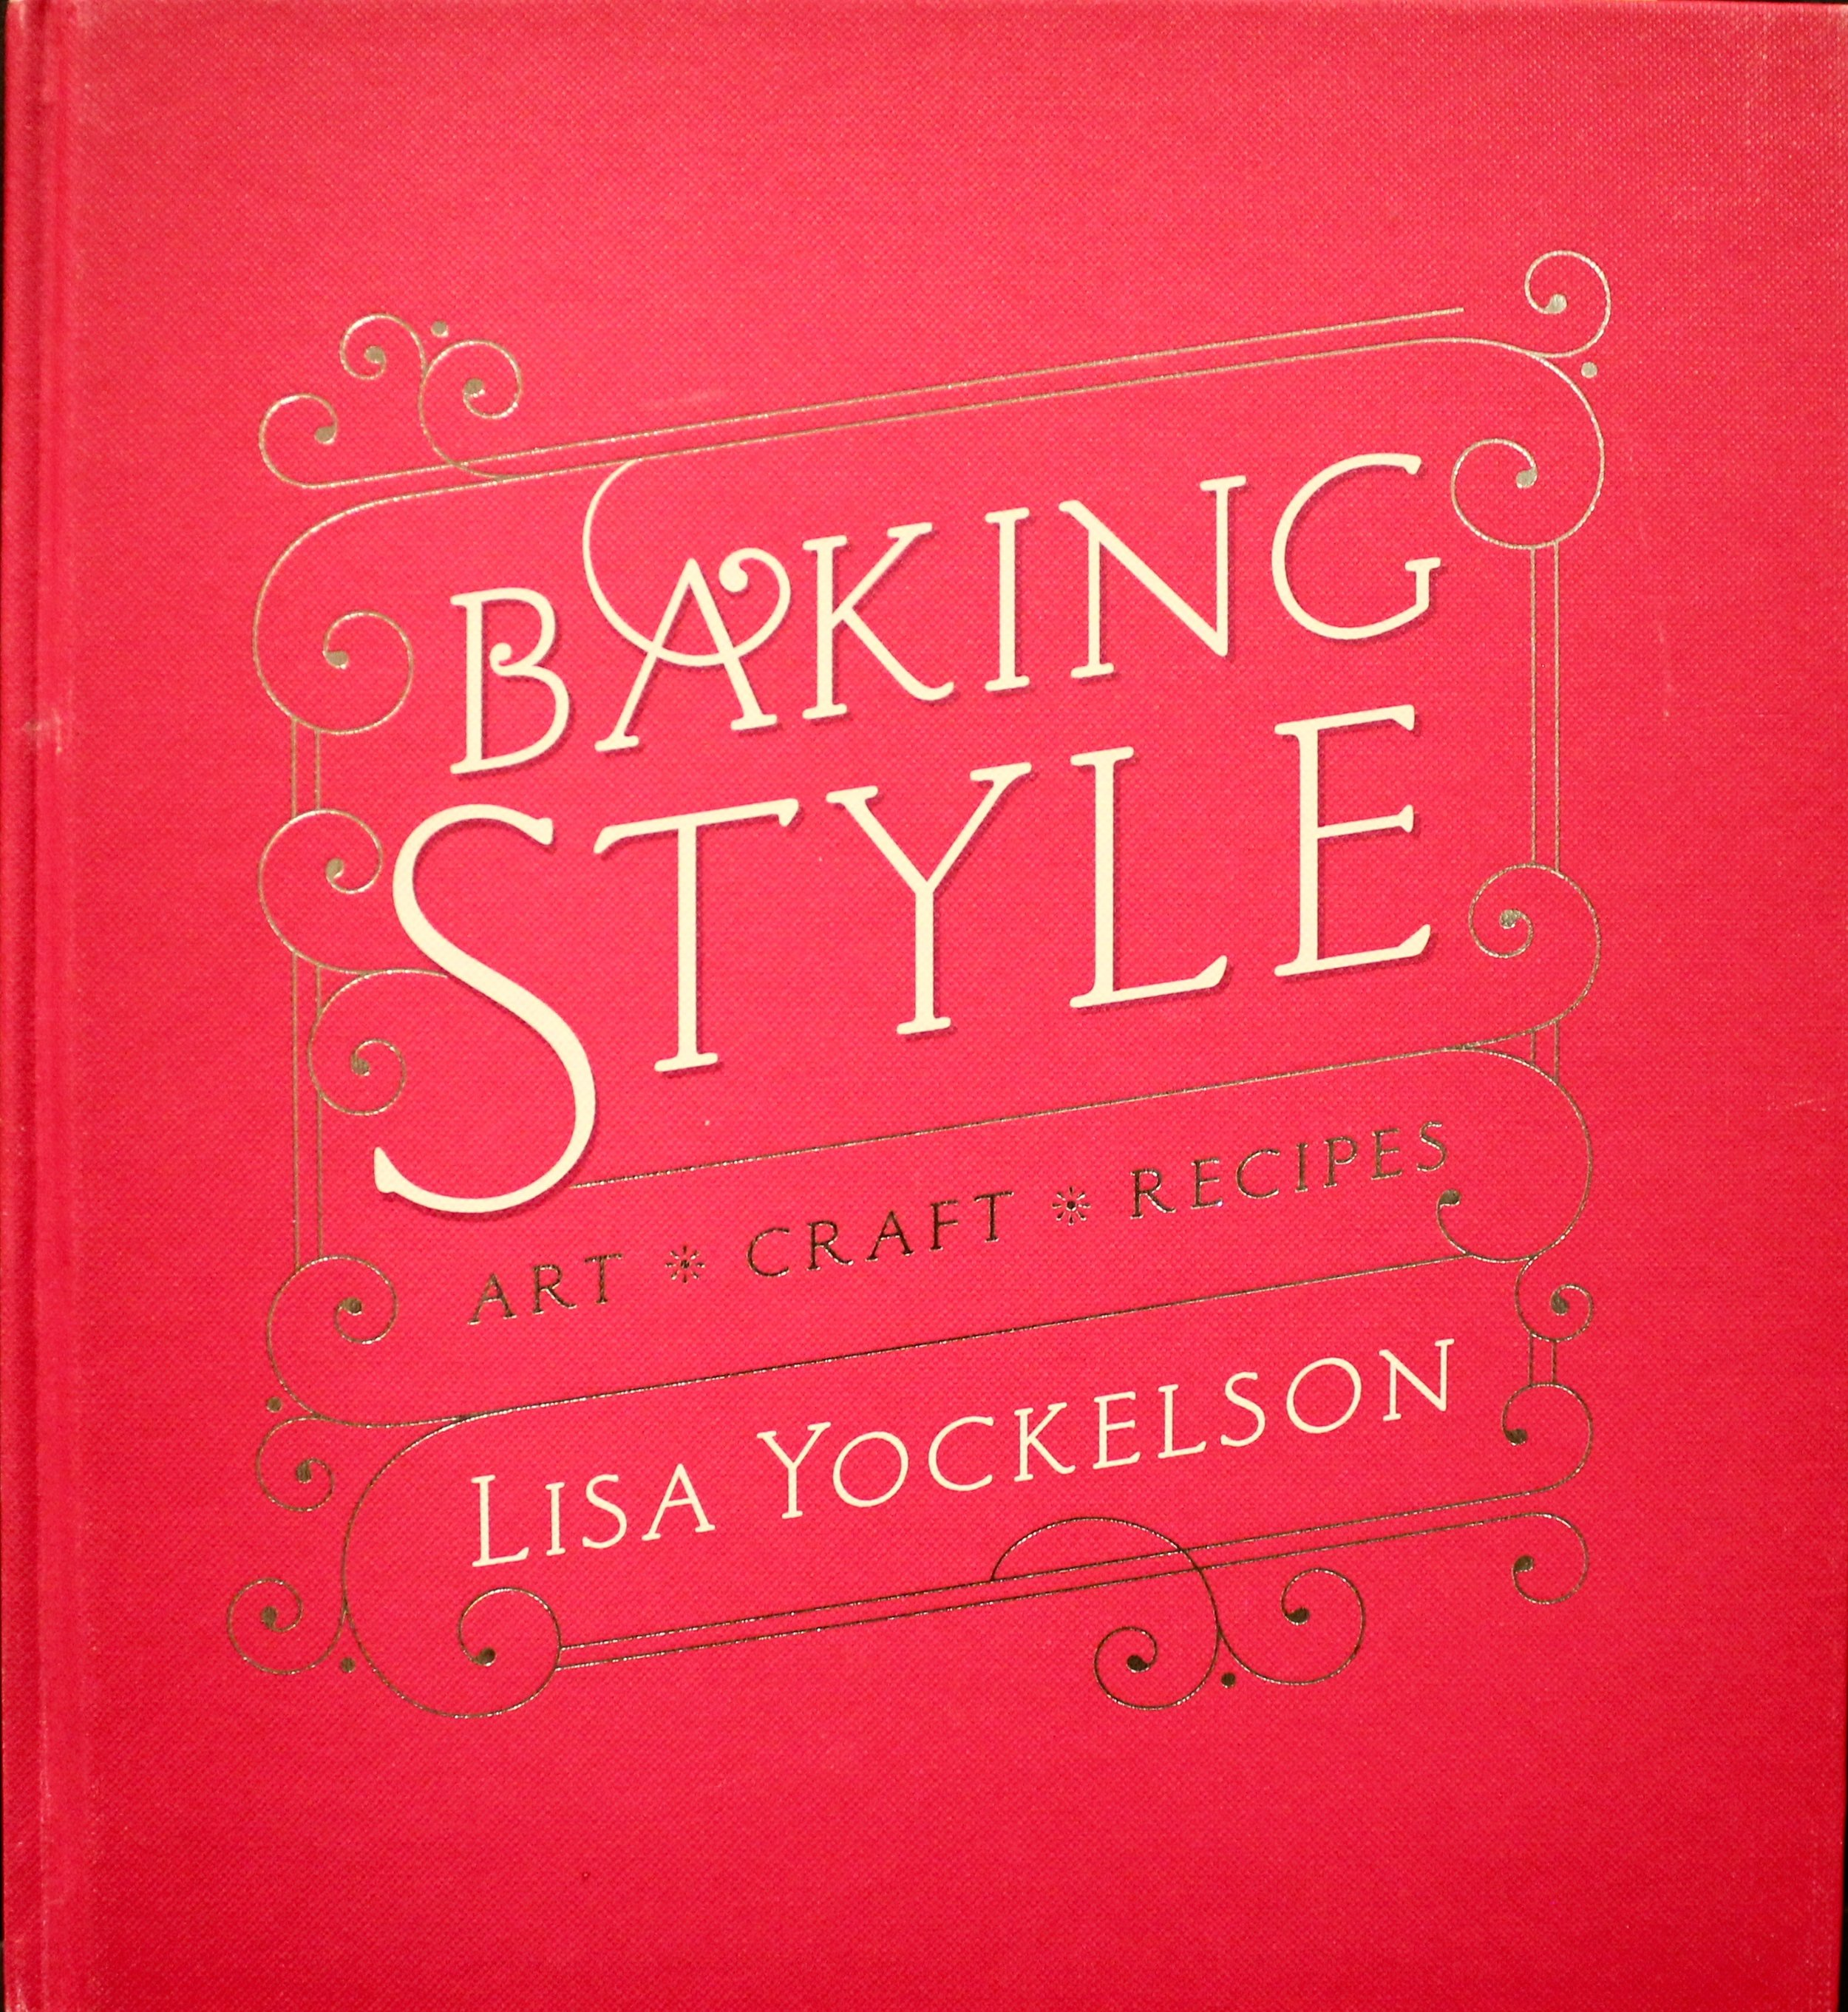 baking style by lisa yockelson.jpg